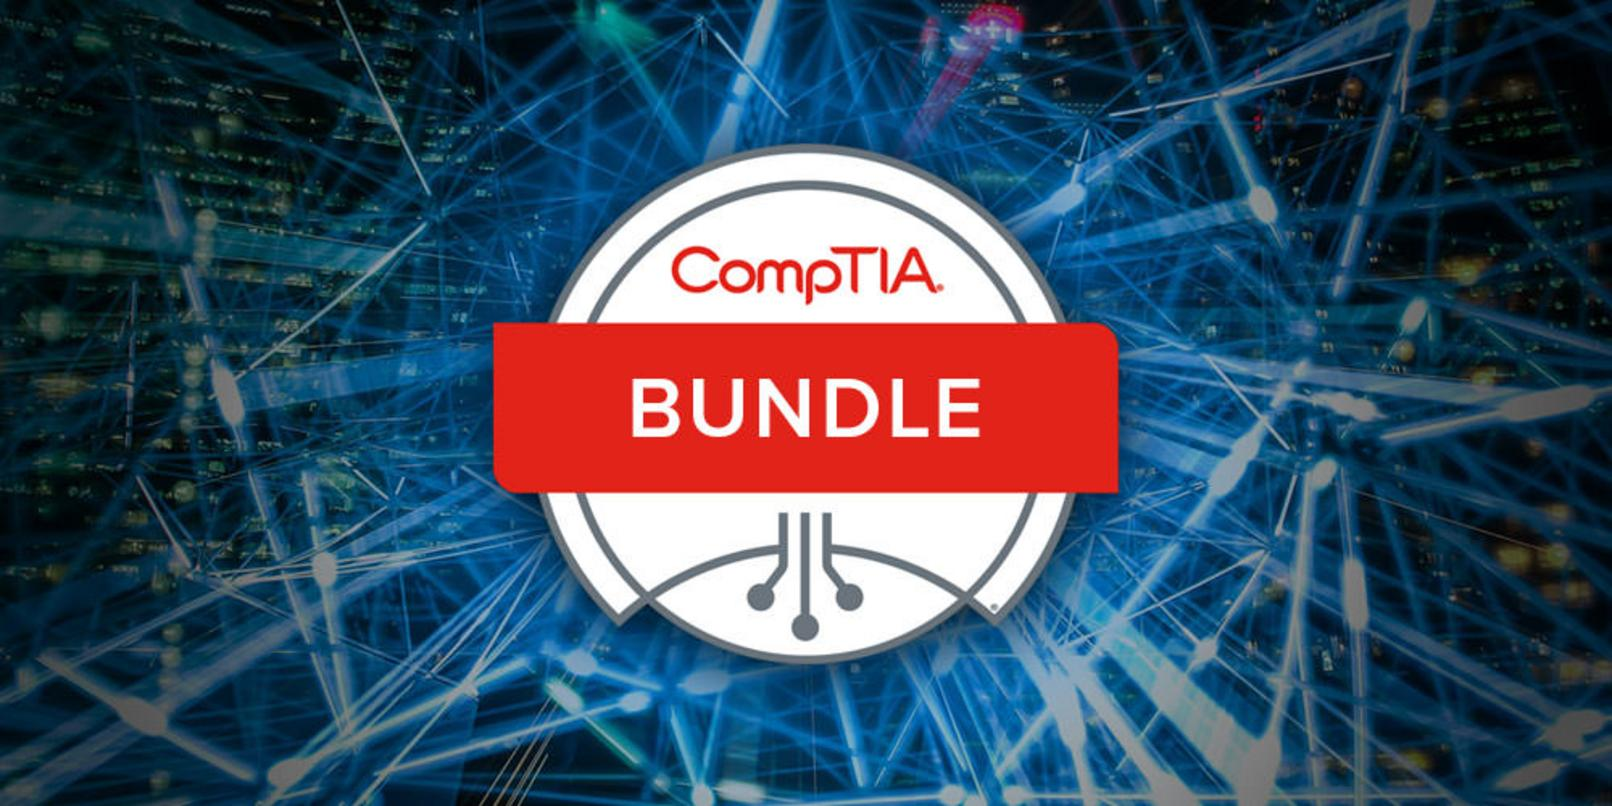 Heres How To Pass 12 Comptia Certification Exams For Less Than 3